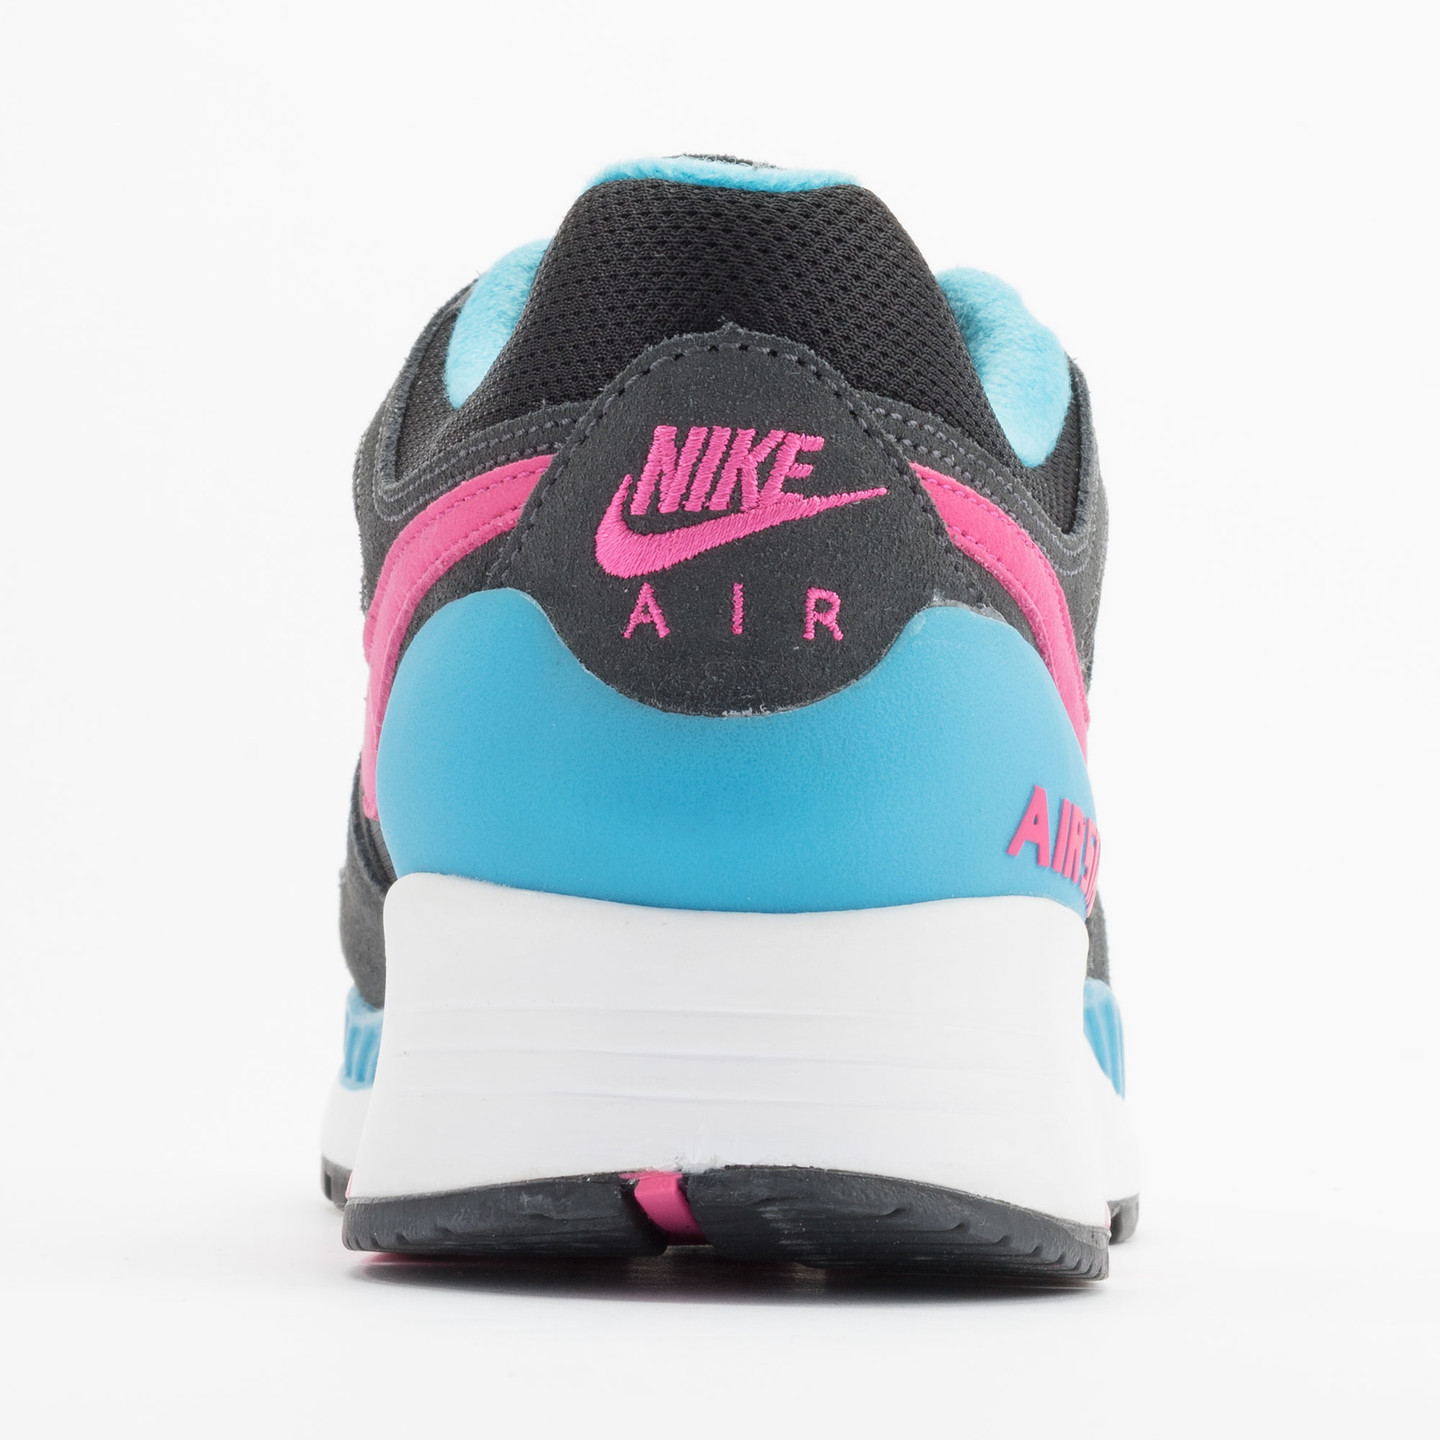 Nike Air Stab Black/Hot Pink-Anthrct-Bl Lgn 312451-004-44.5